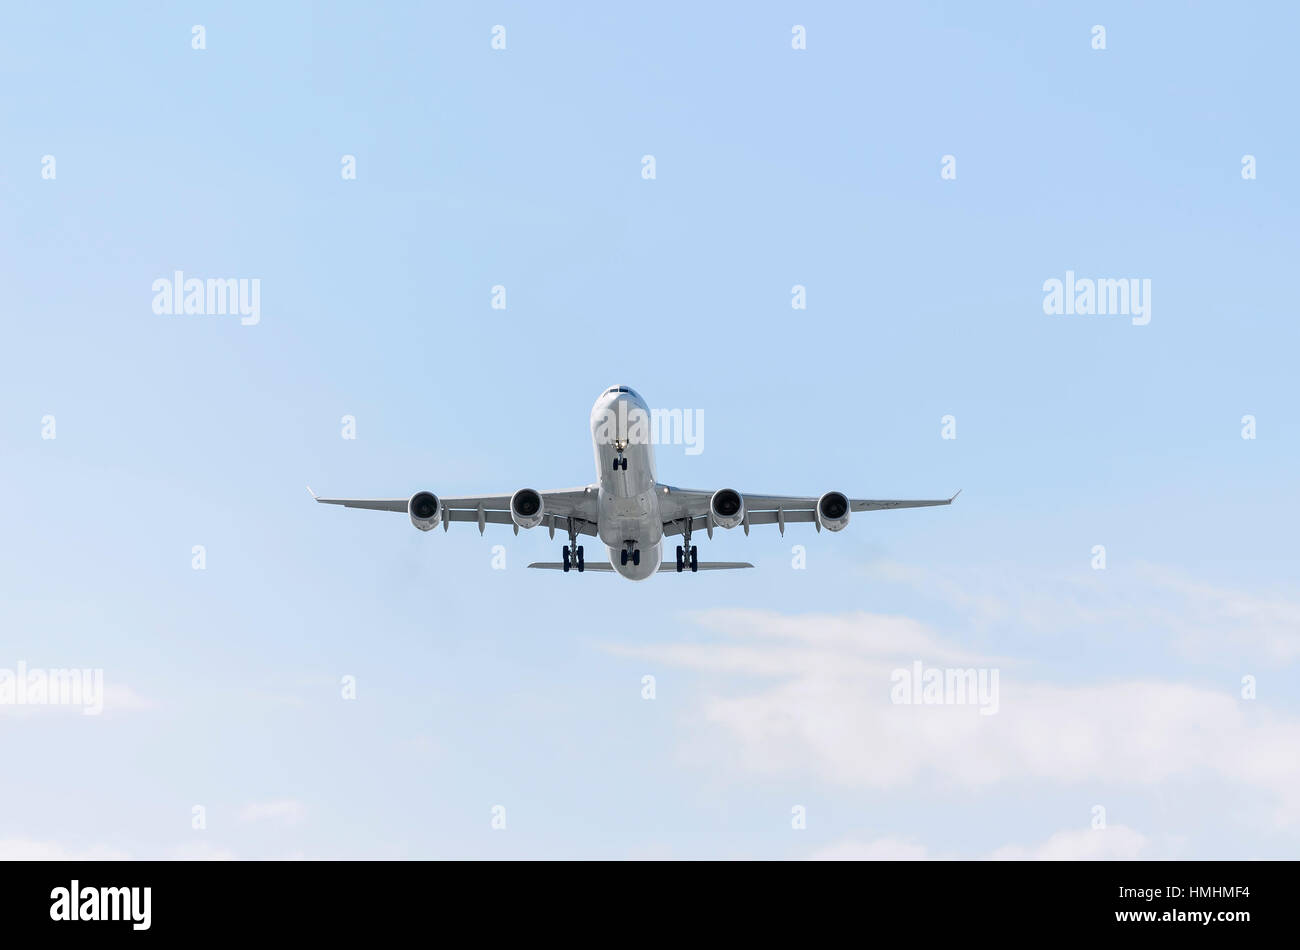 Airplane Airbus A340, of Iberia airline. Blue sky with some clouds. - Stock Image